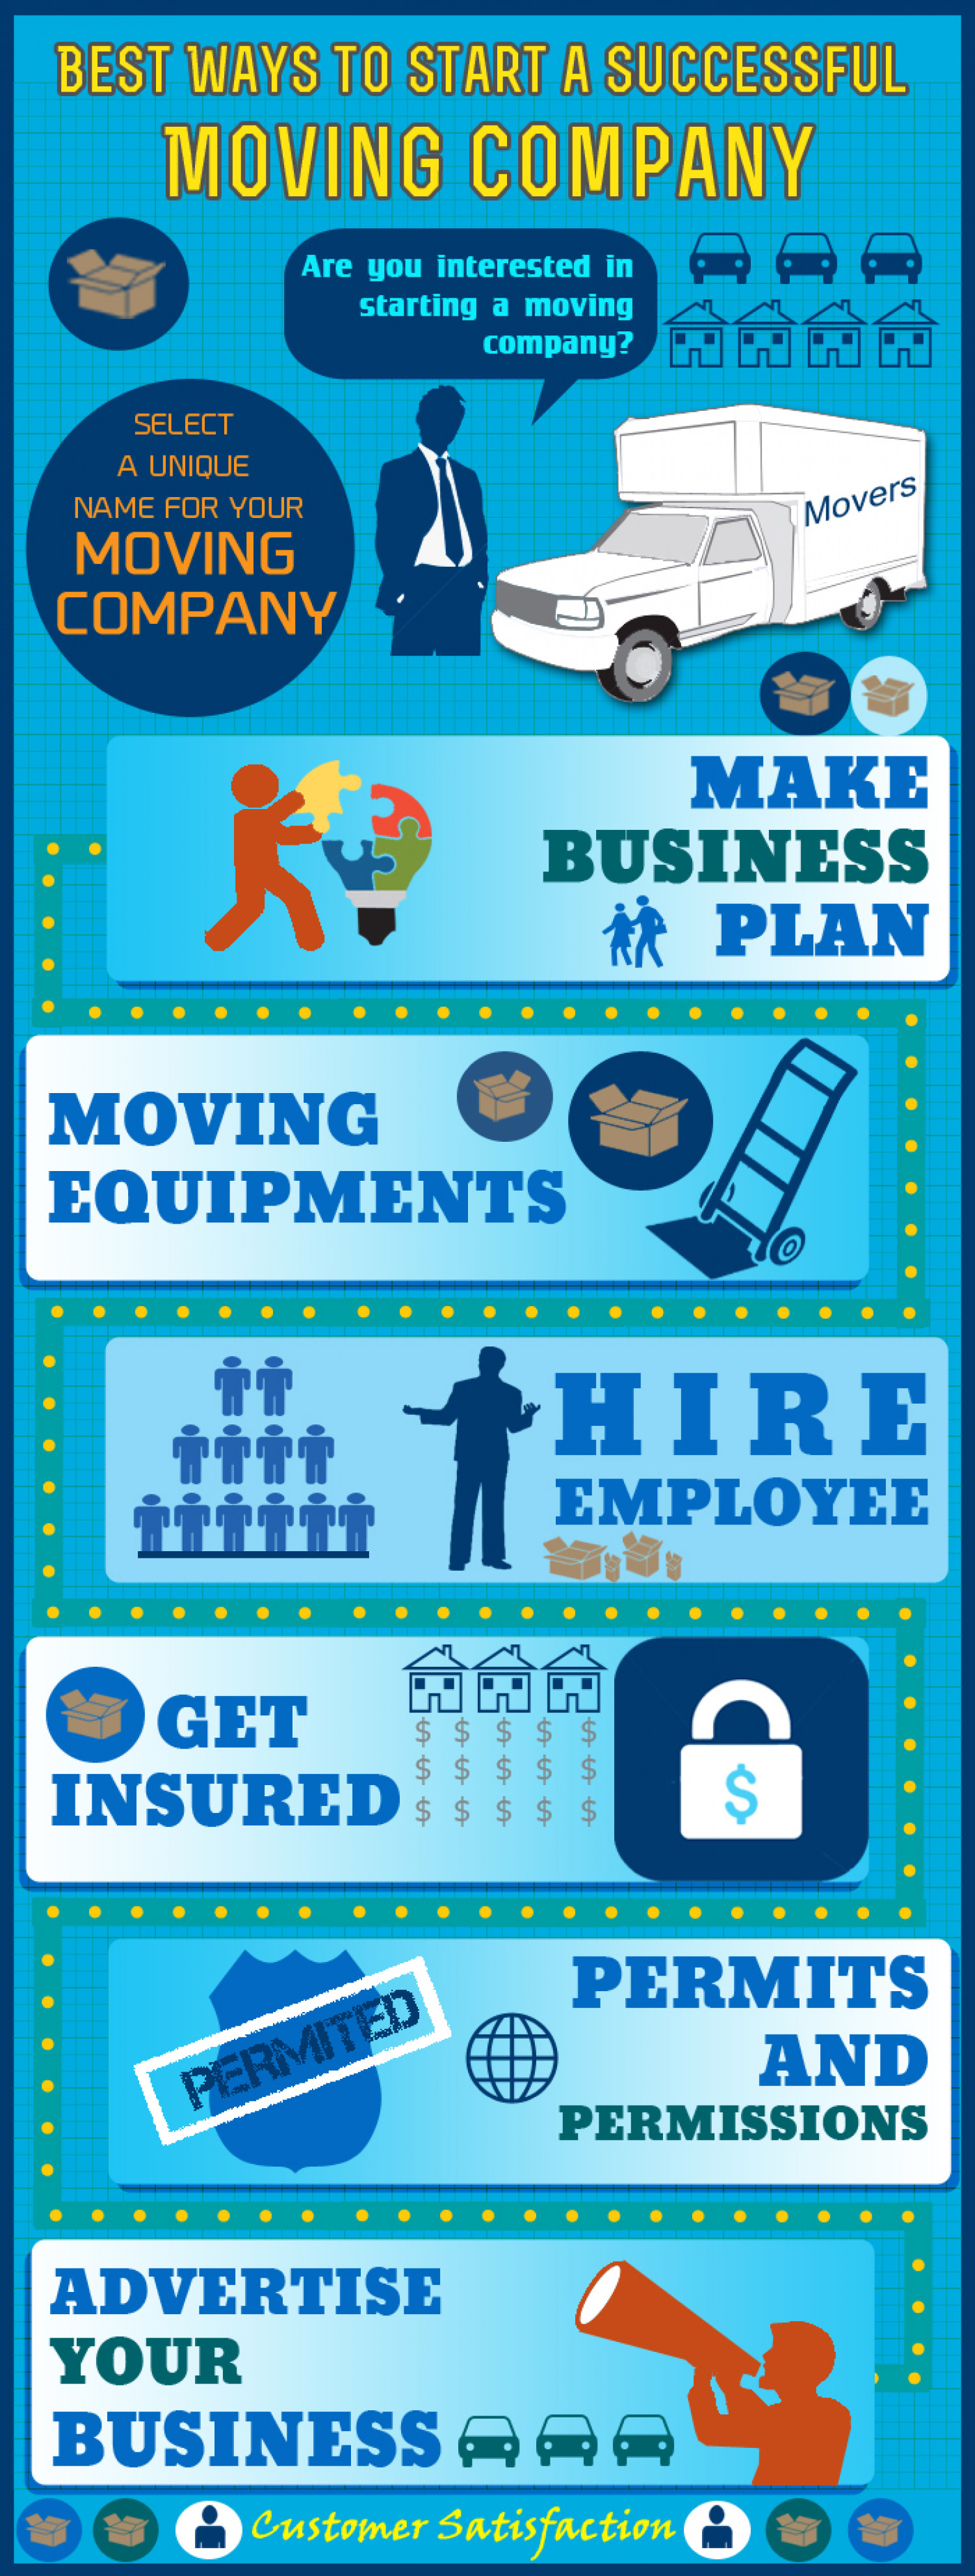 Best Ways to Start a Successful Moving Compan Infographic